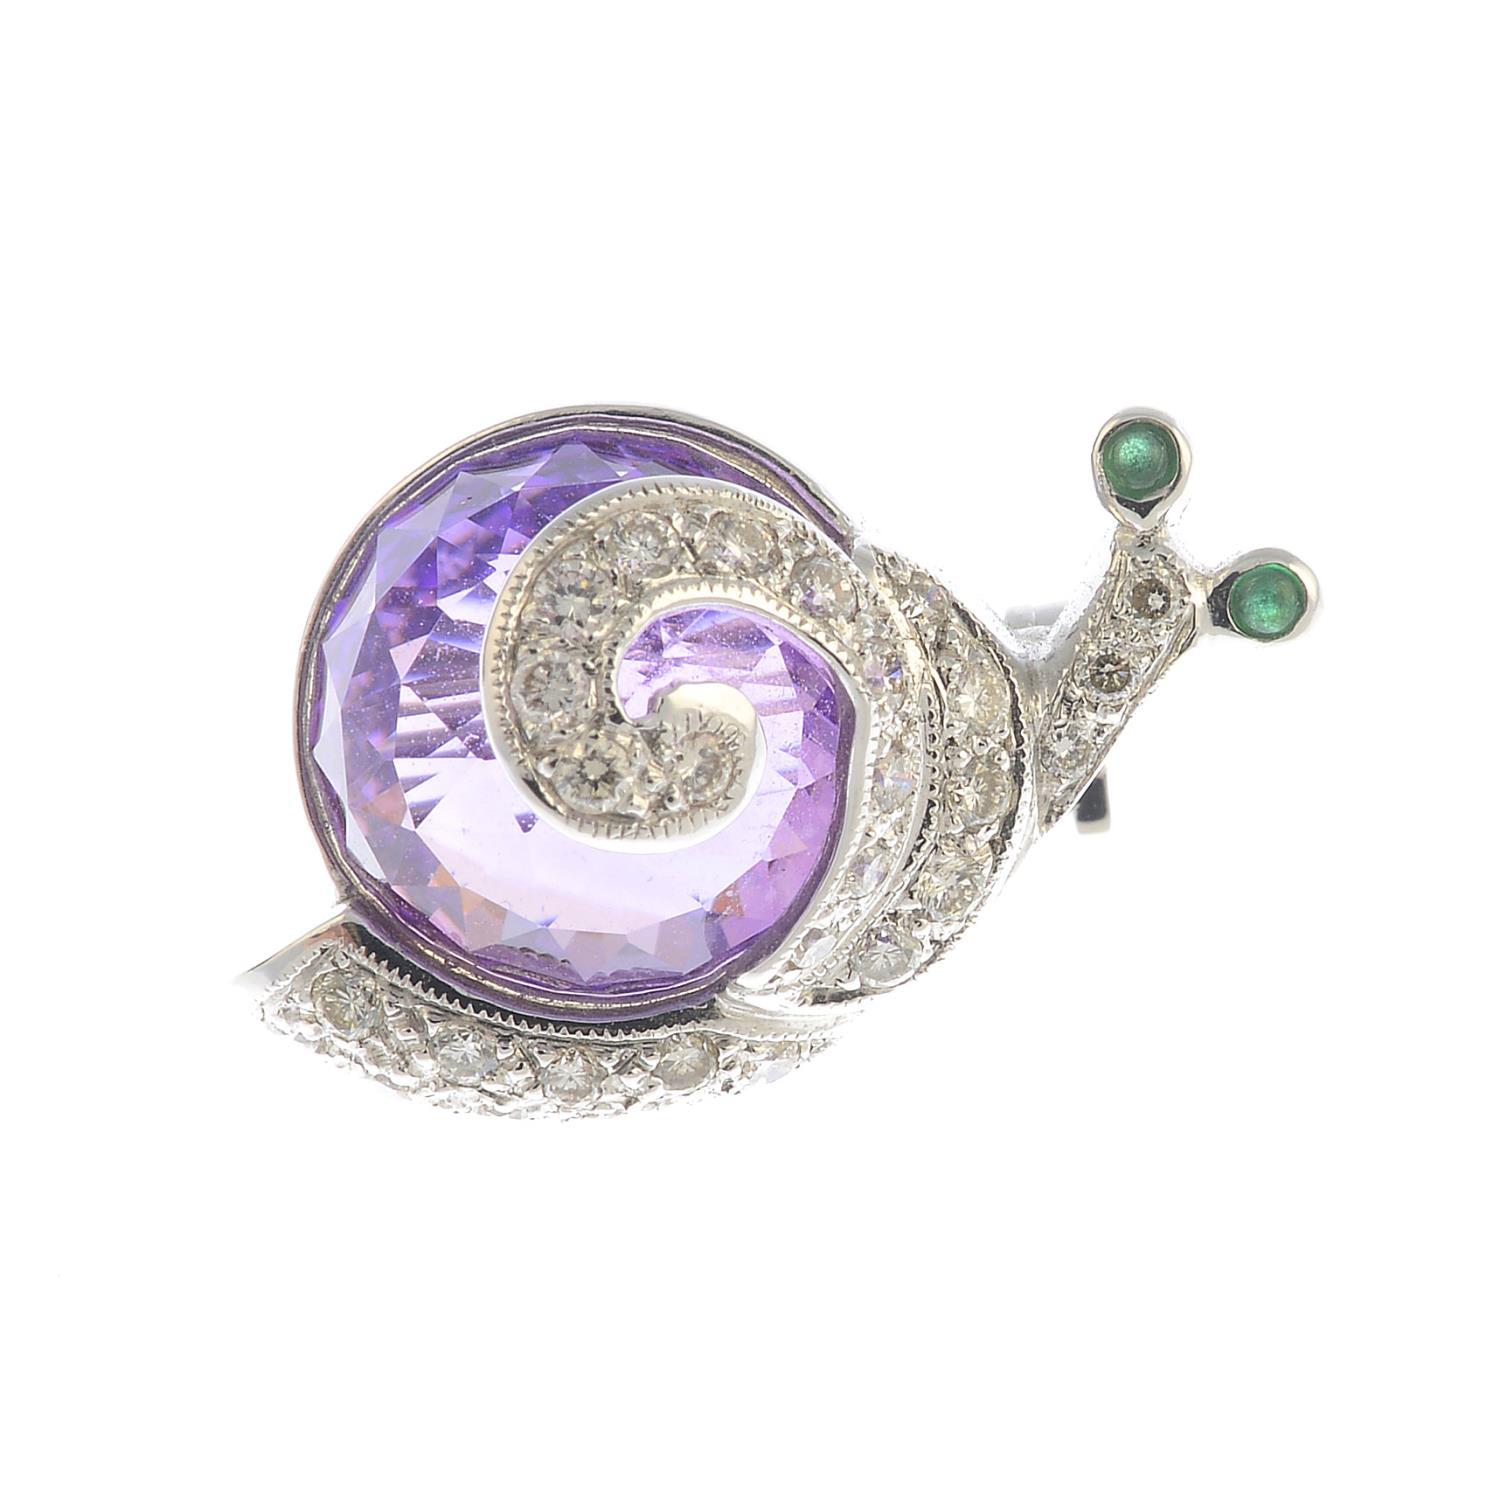 Lot 20 - A diamond, amethyst and emerald snail brooch.Estimated total diamond weight 0.20ct.Length 1.2cms.